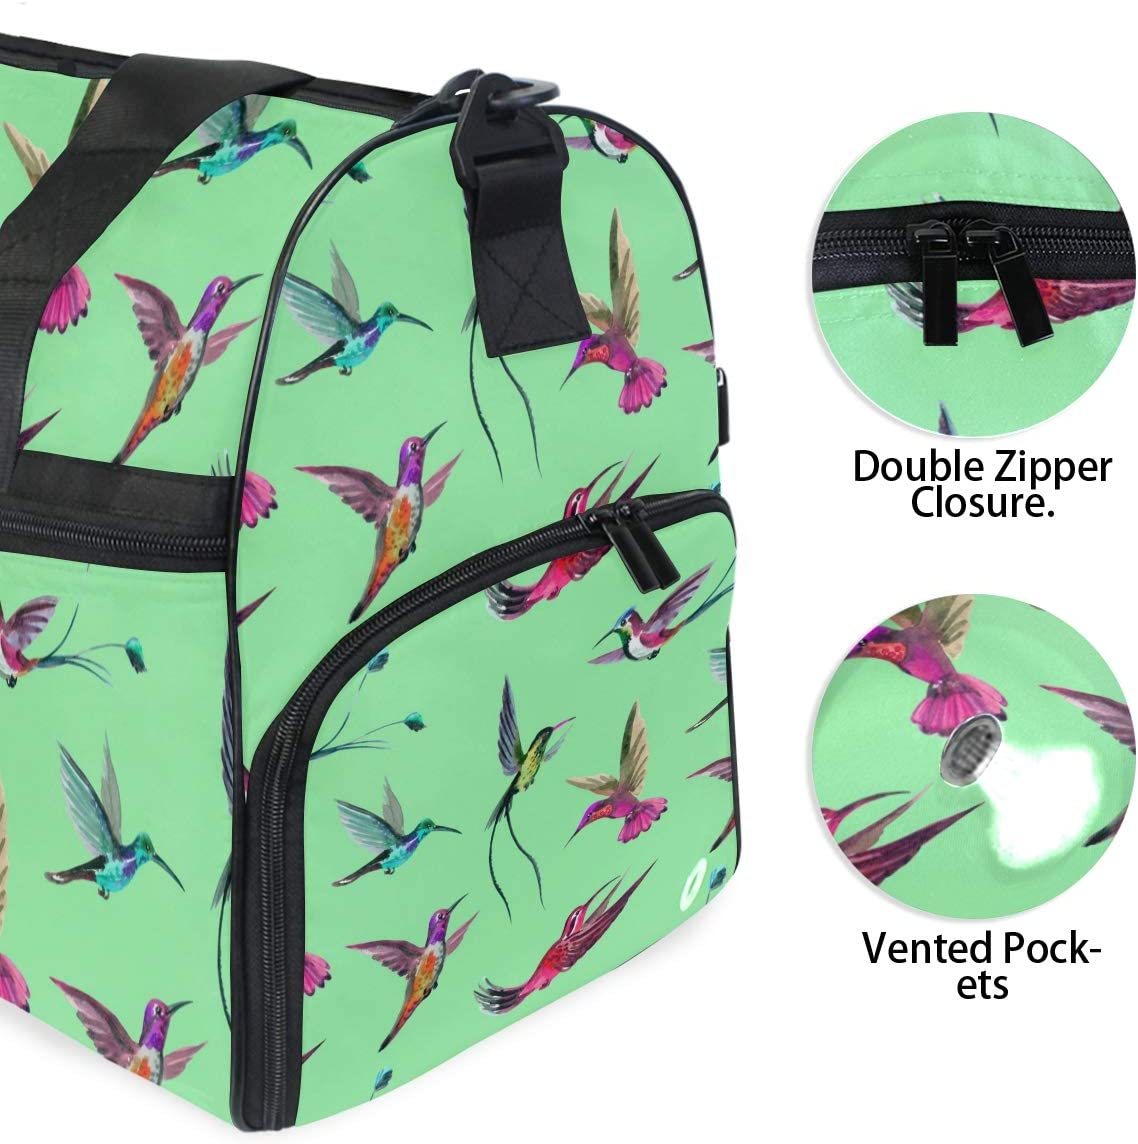 AHOMY Colorful Hummingbird Sports Gym Bag with Shoes Compartment Travel Duffel Bag